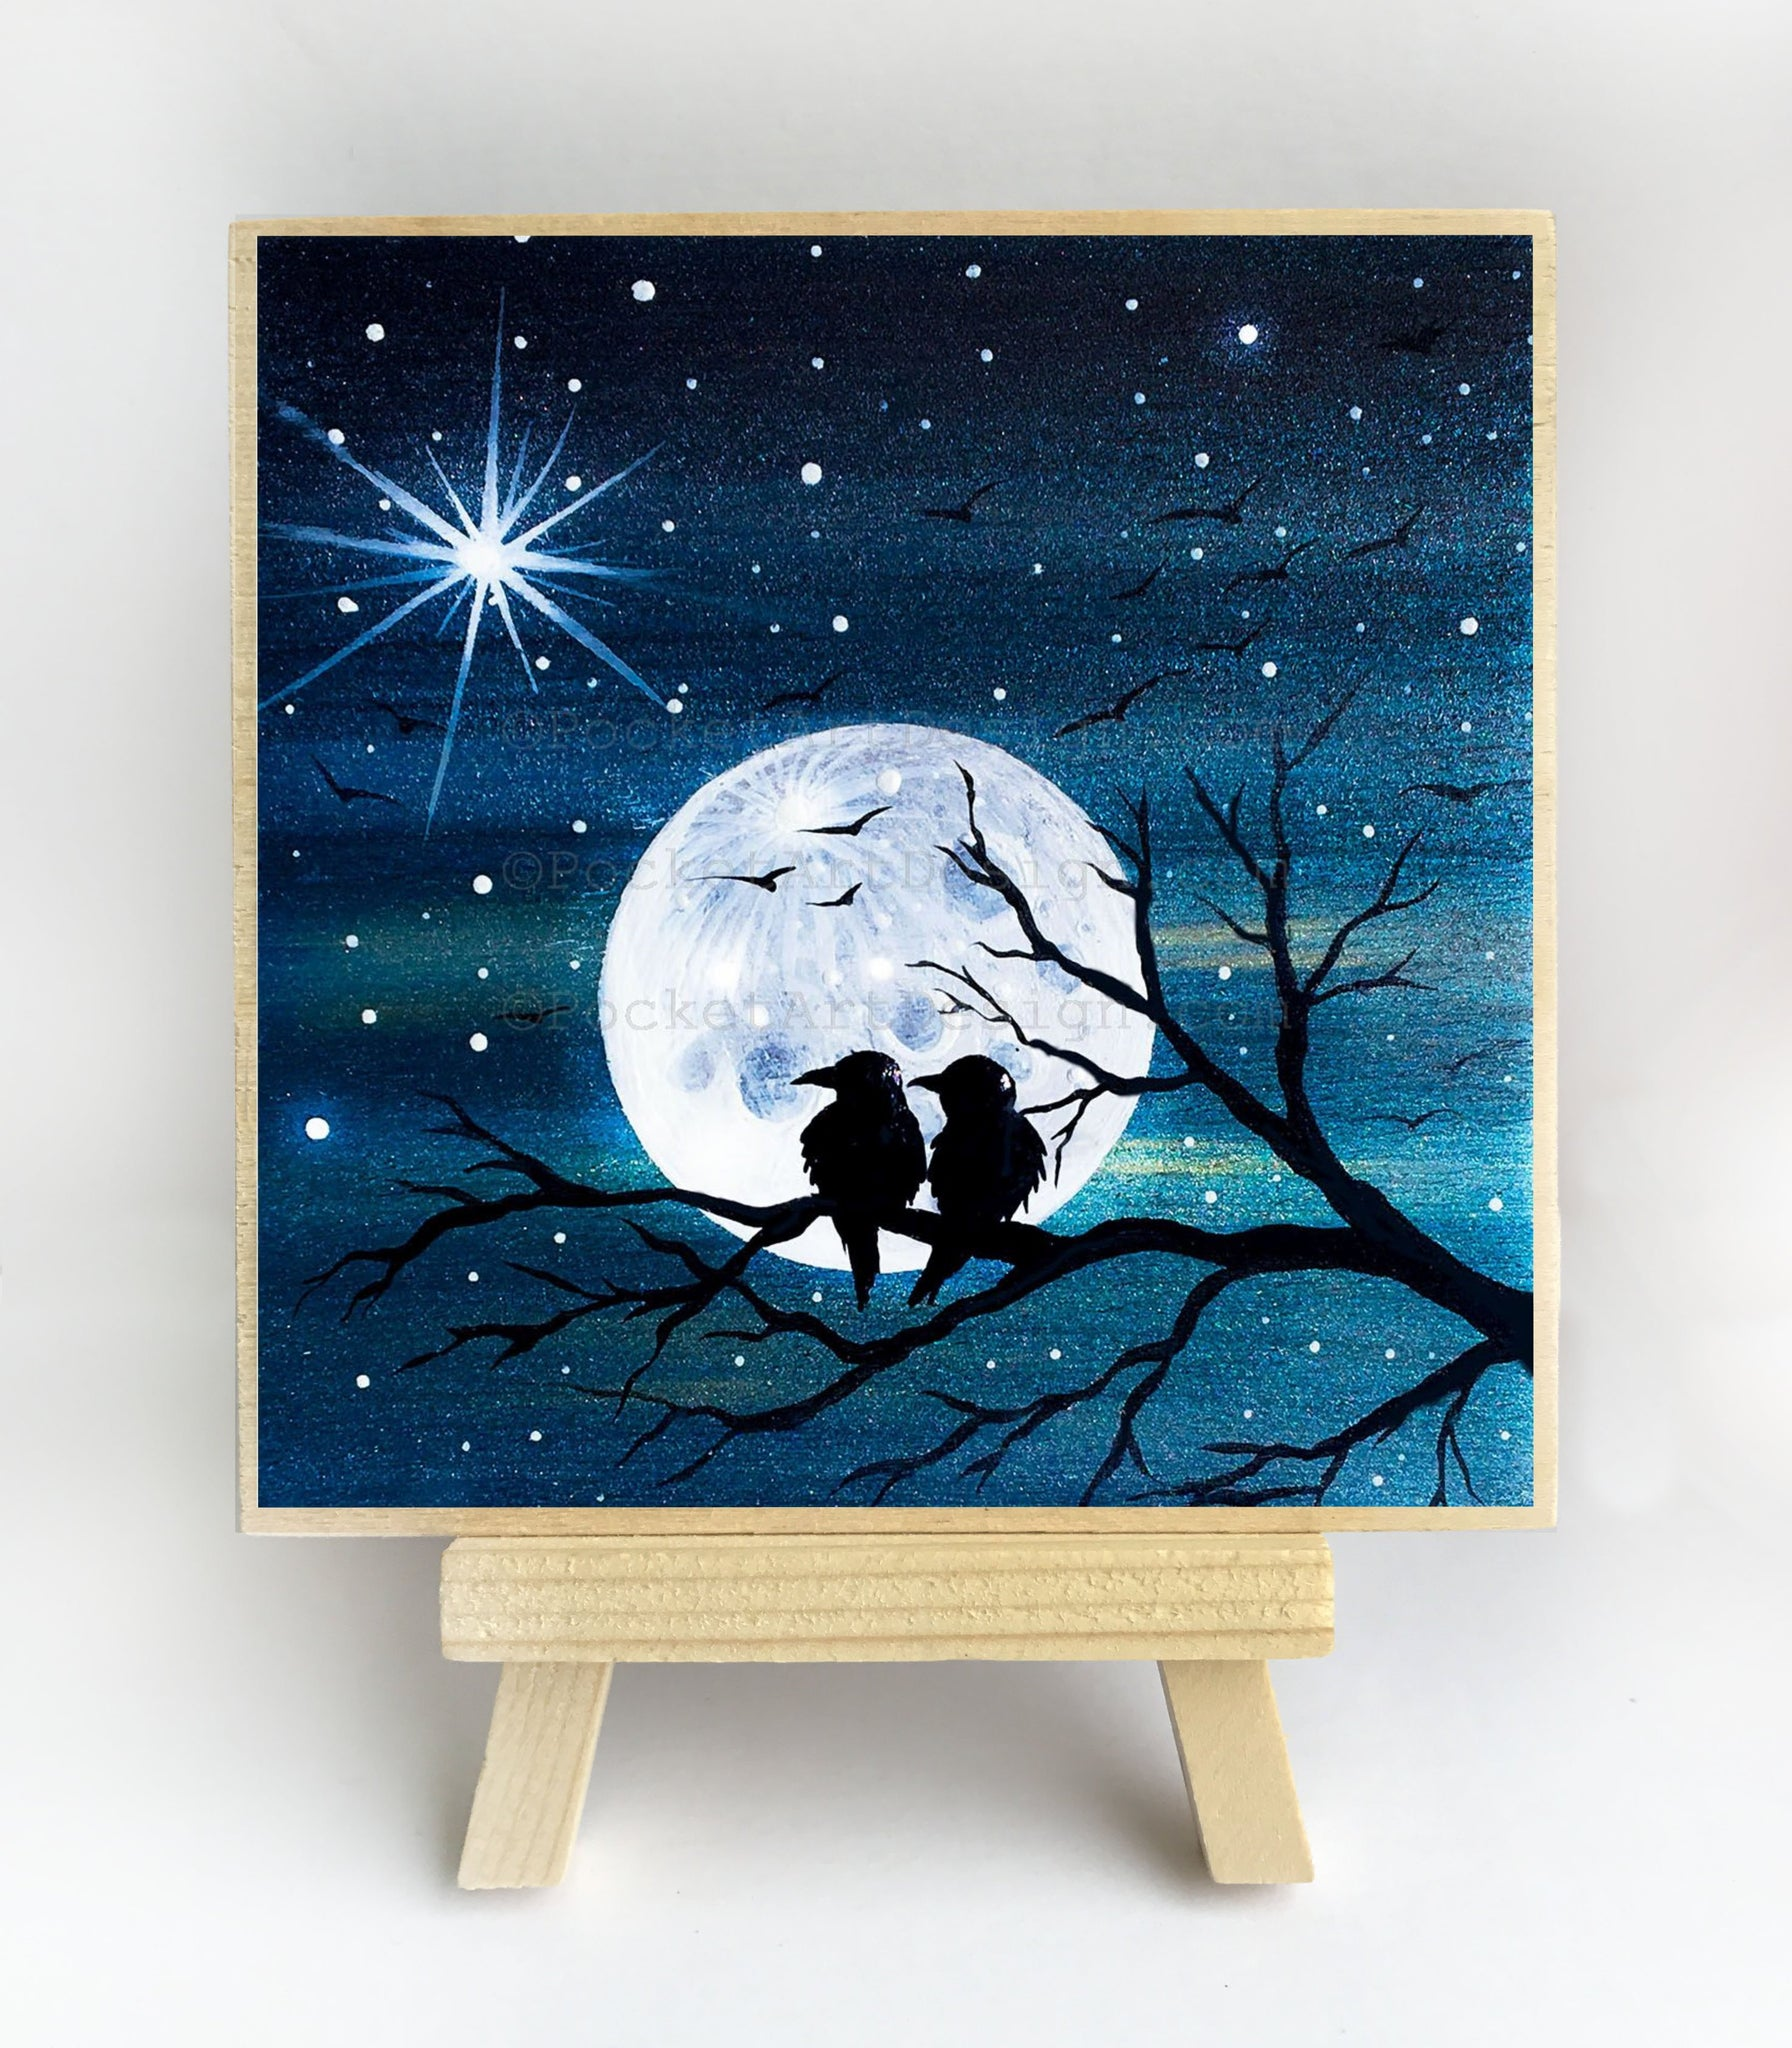 Two birds on a tree - full moon - silhouette - original miniature art print on 4 x 4 wood-Print-Easel Wood-PocketArtDesigns-Original Art-wall rt